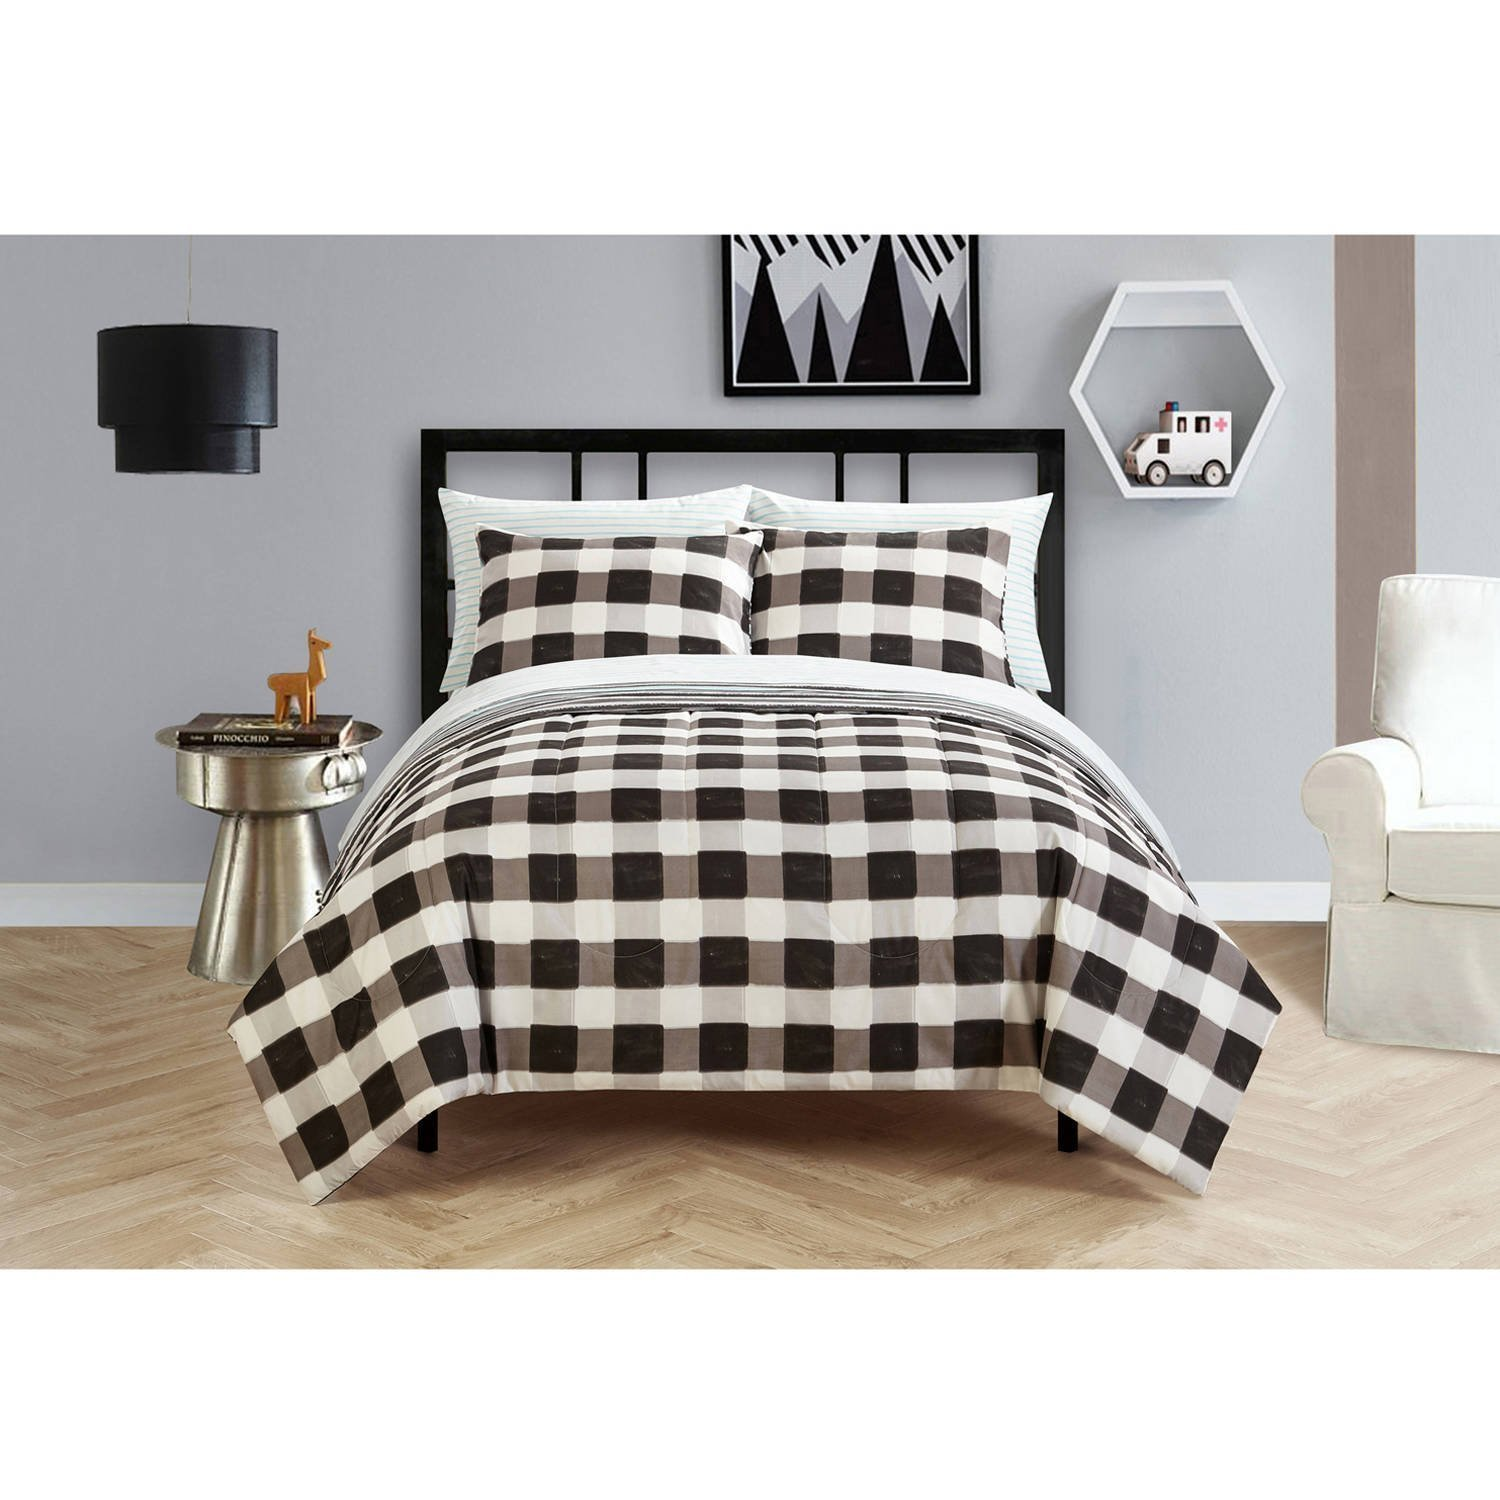 Black And White Checkered Wall Border Find